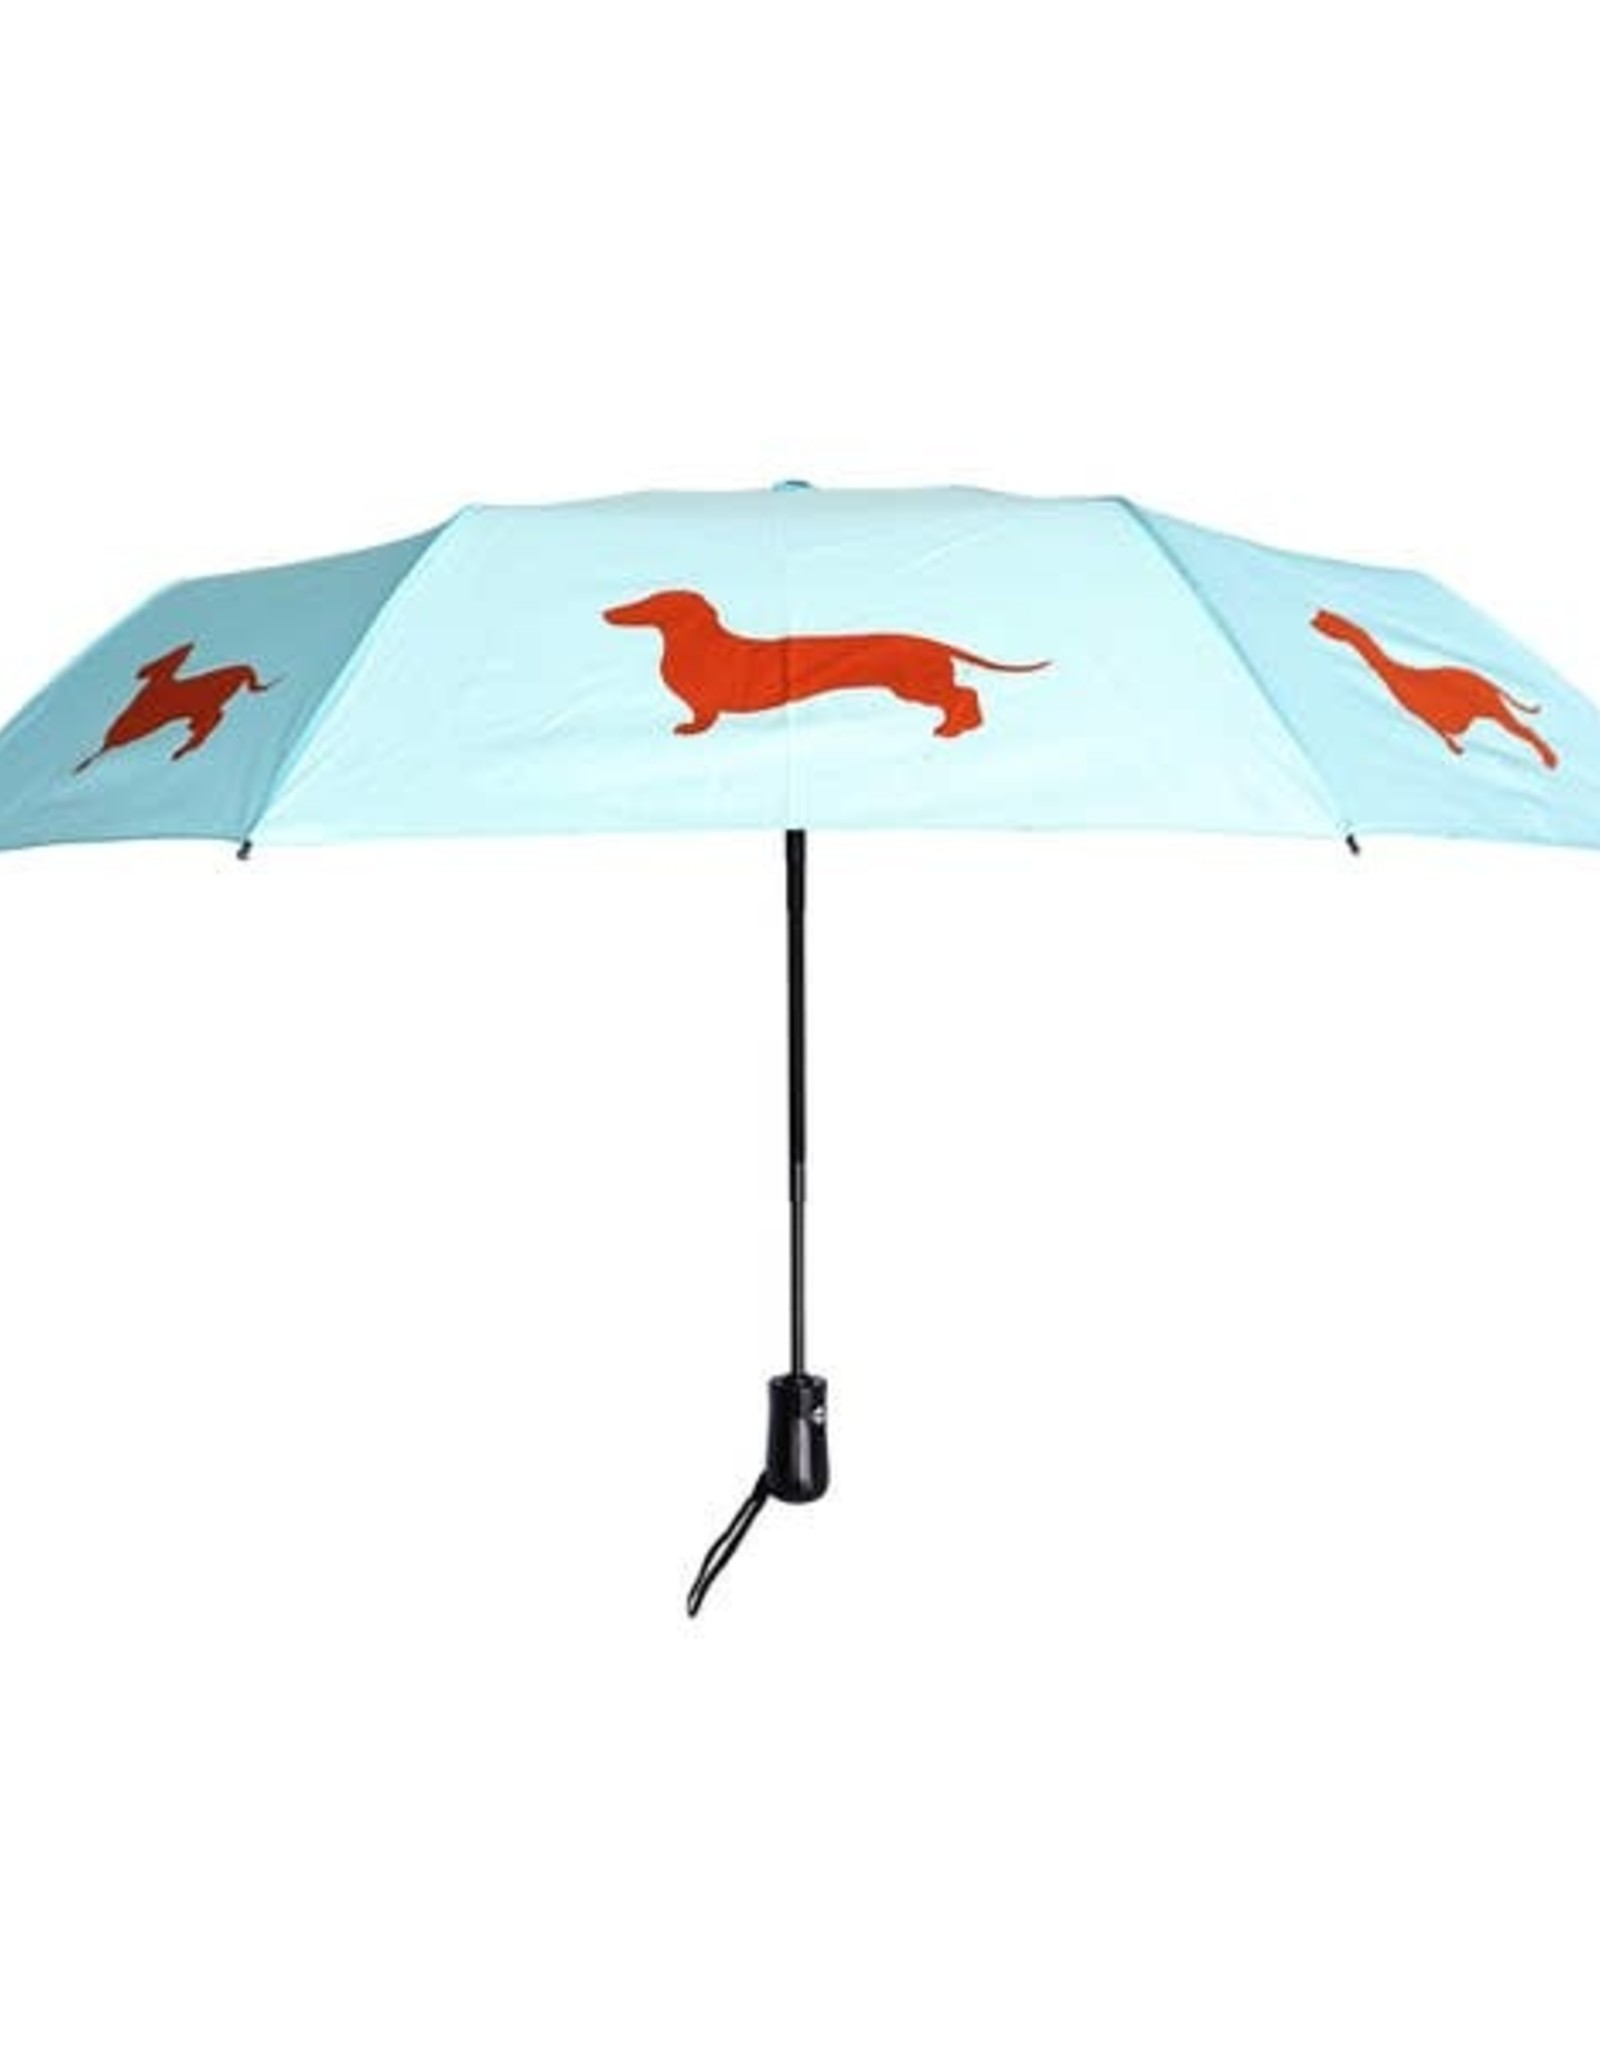 San Francisco Umbrella Company SFUC Collapsible Umbrella with Auto Open Dachshund